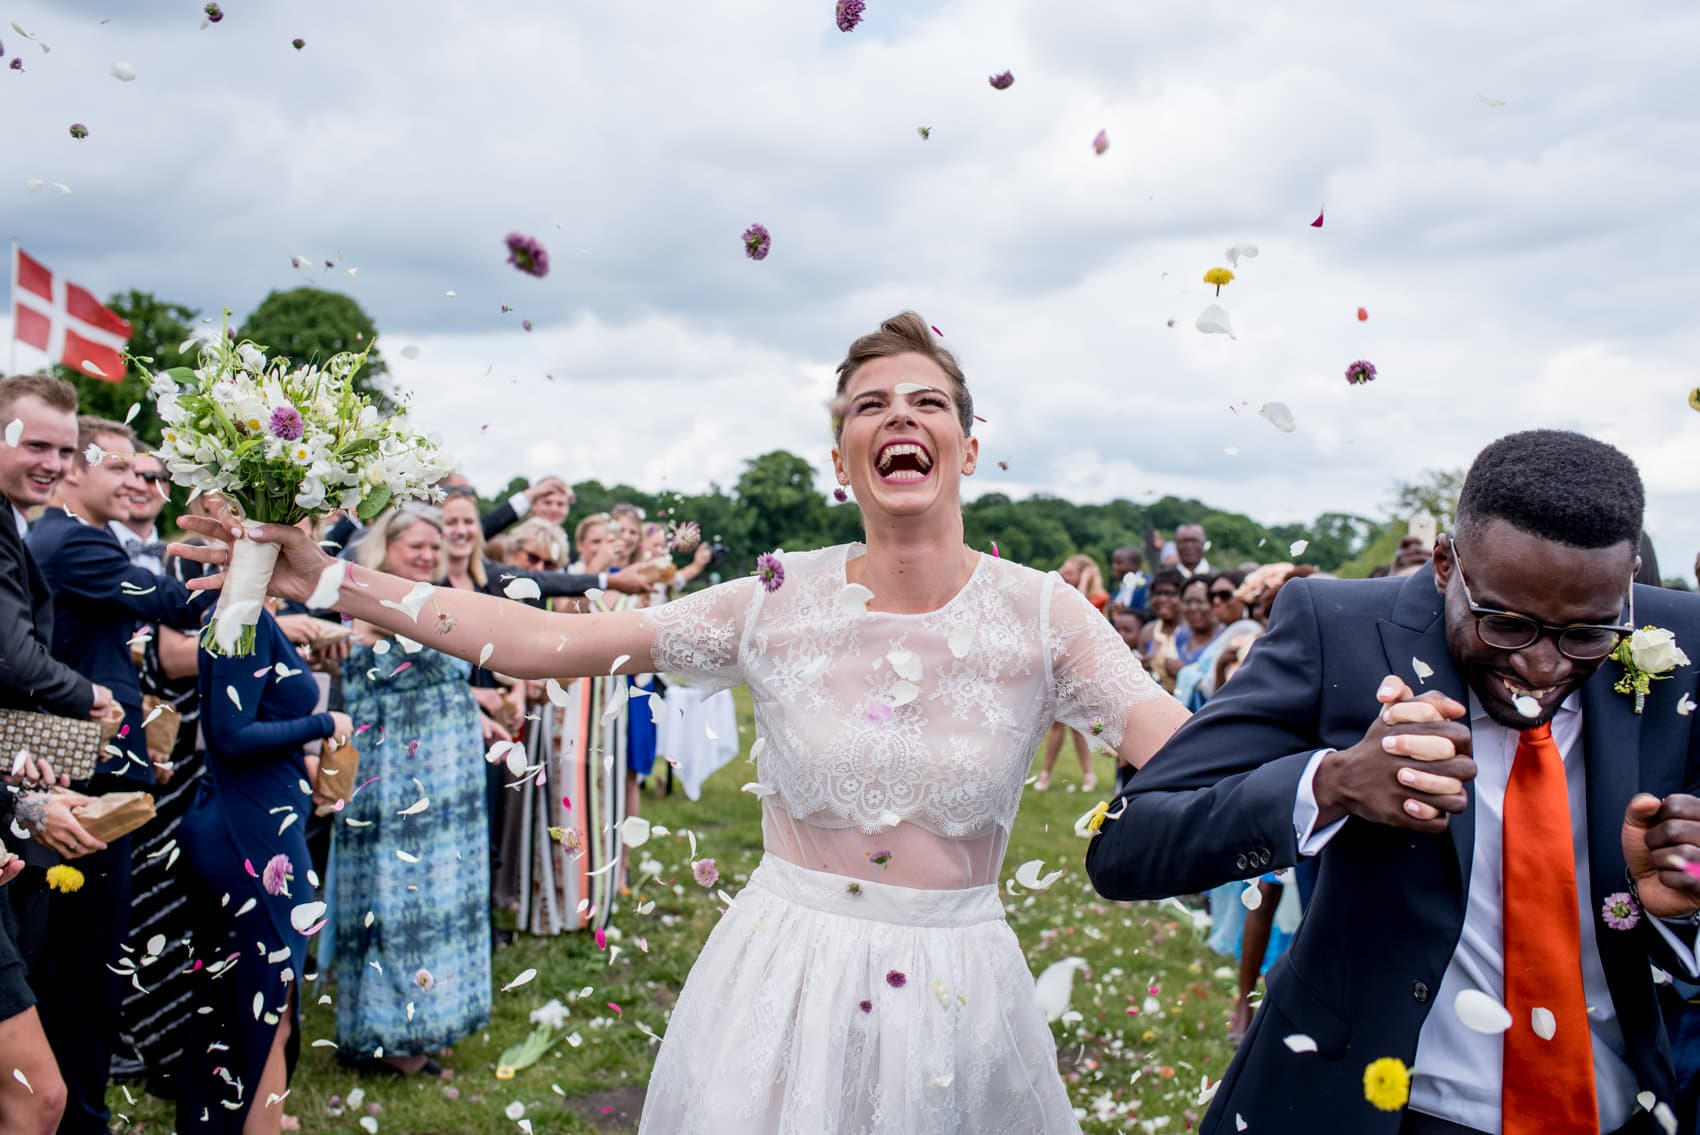 wedding planning tips with some confetti action